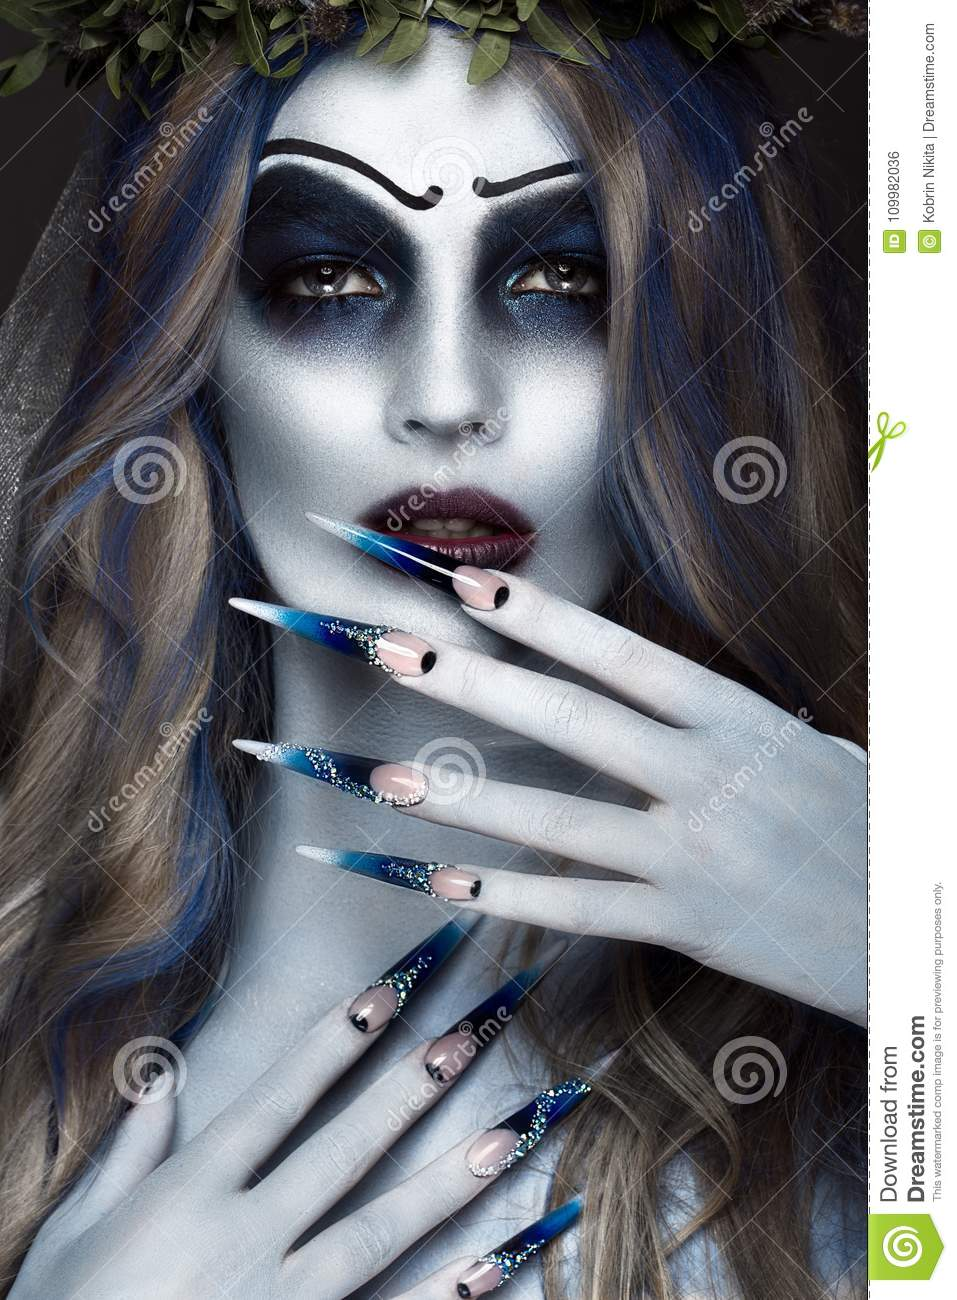 Halloween Makeup Scary.Portrait Of A Horrible Scary Corpse Bride In Wreath With